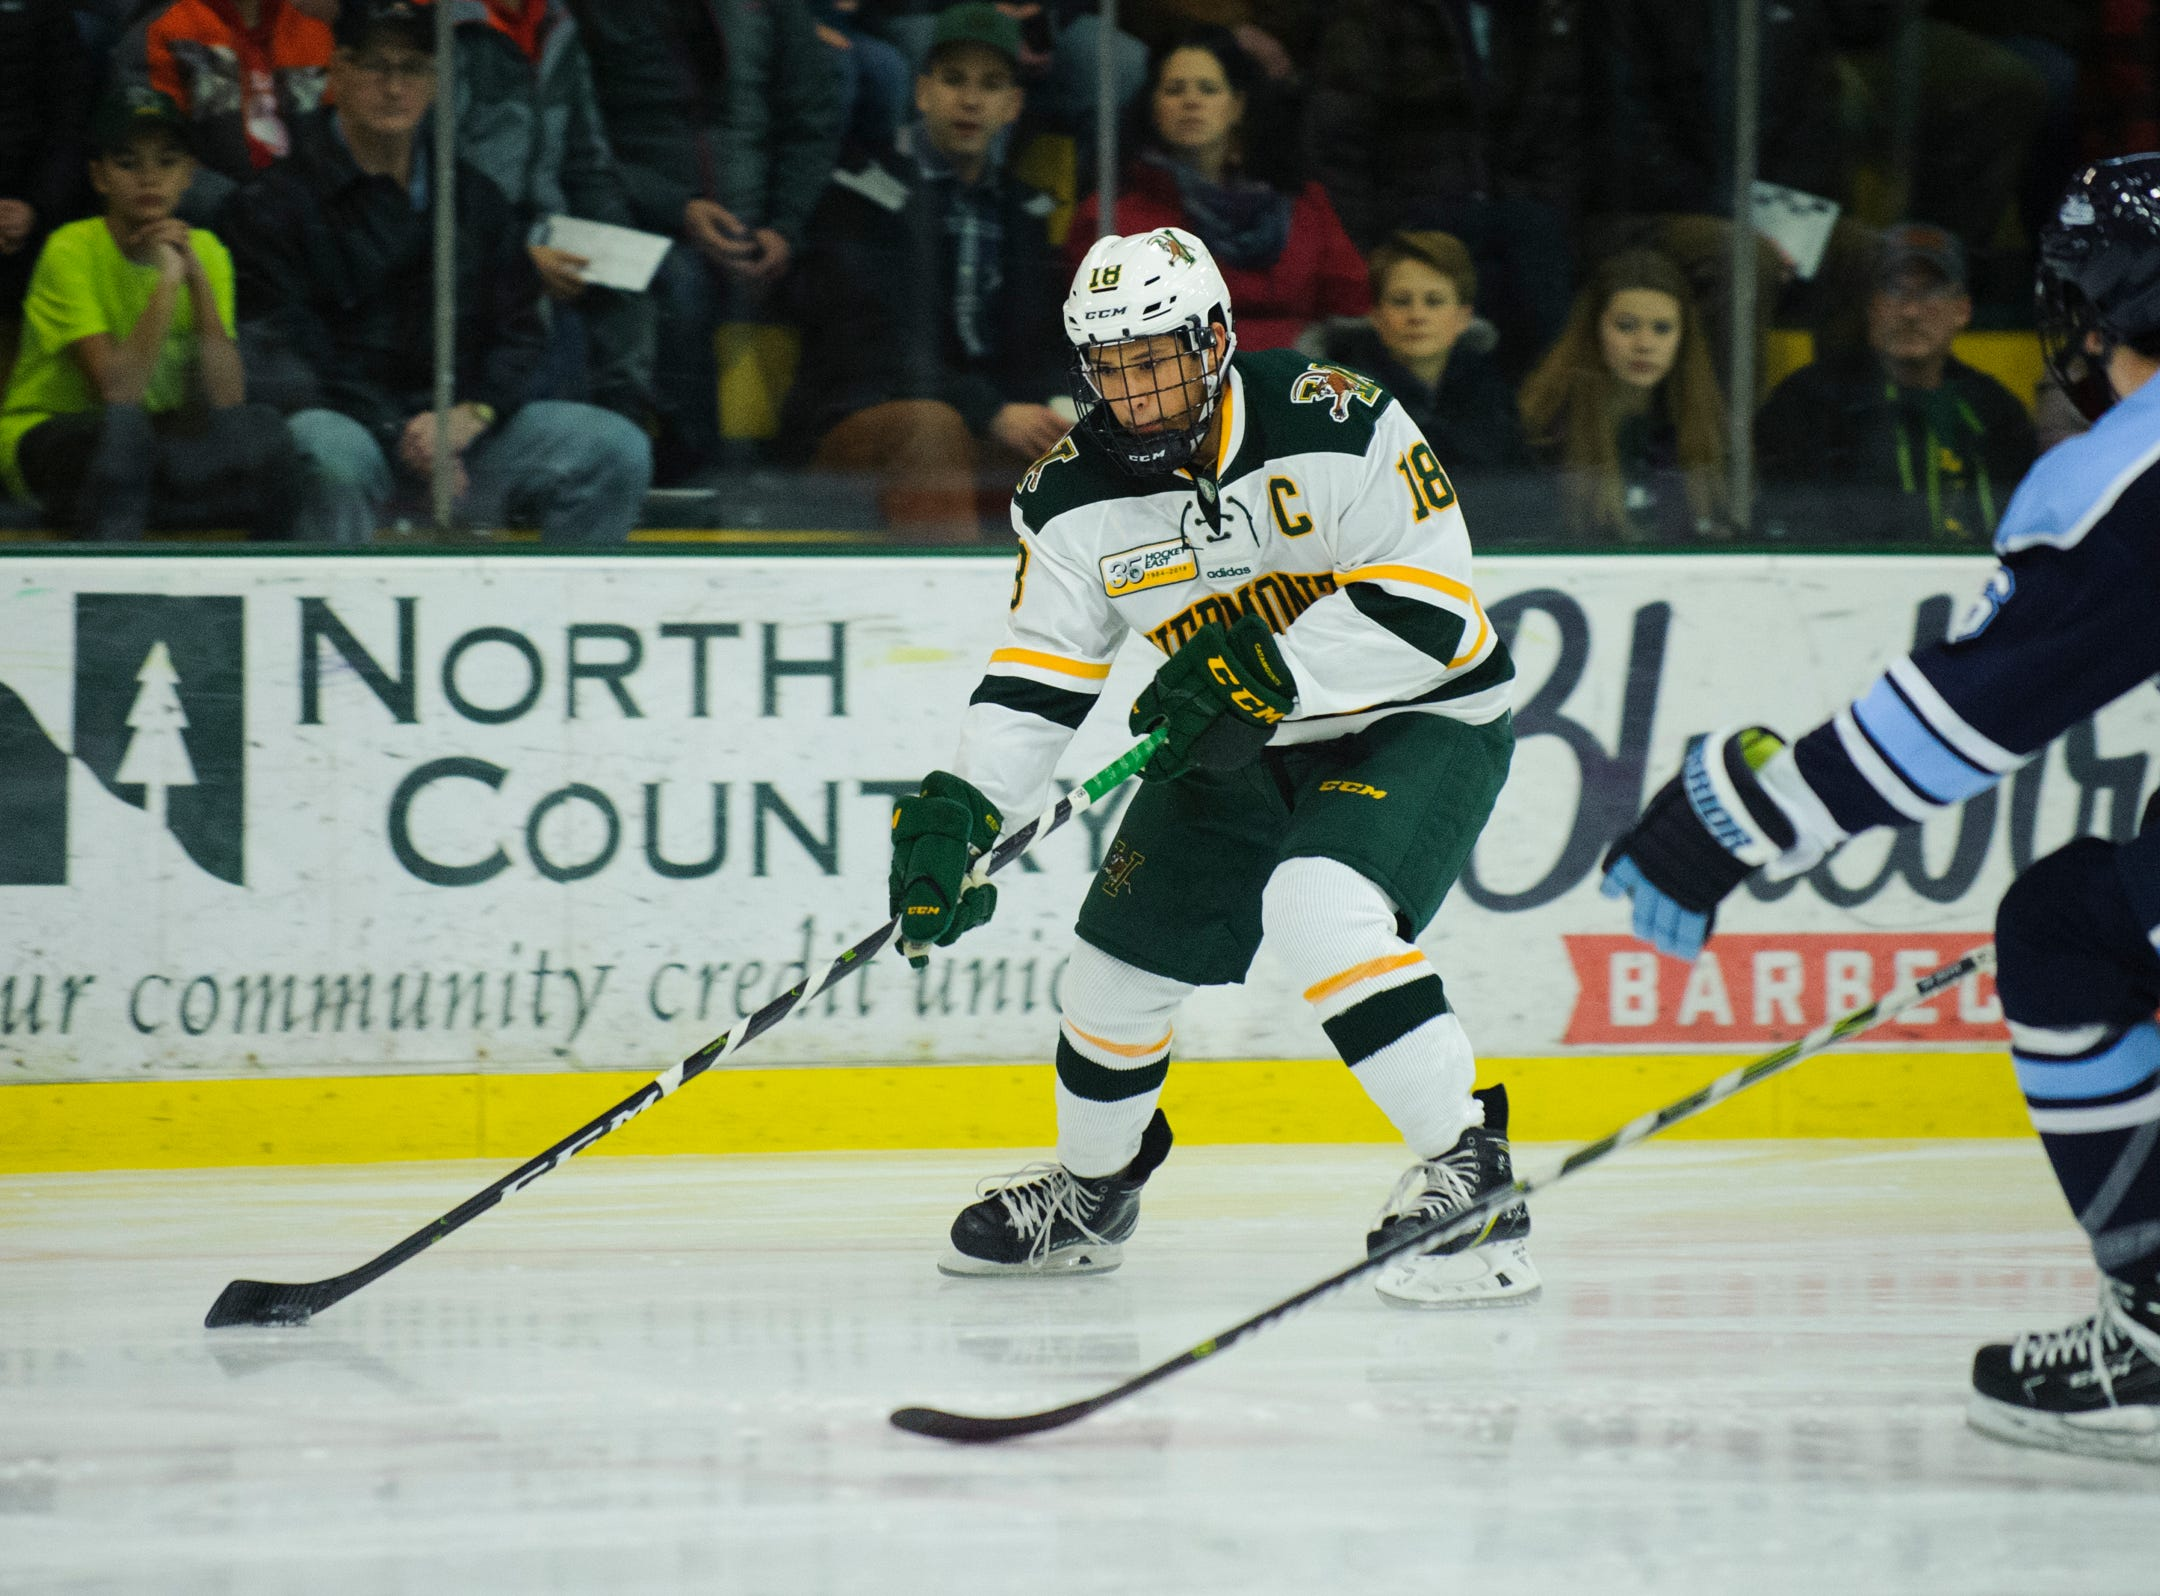 Vermont defenseman Matt O'Donnell (18) looks to take a shot during the men's hockey game between the Mine Black Bears and the Vermont Catamounts at Gutterson Field House on Friday night November 30, 2018 in Burlington.